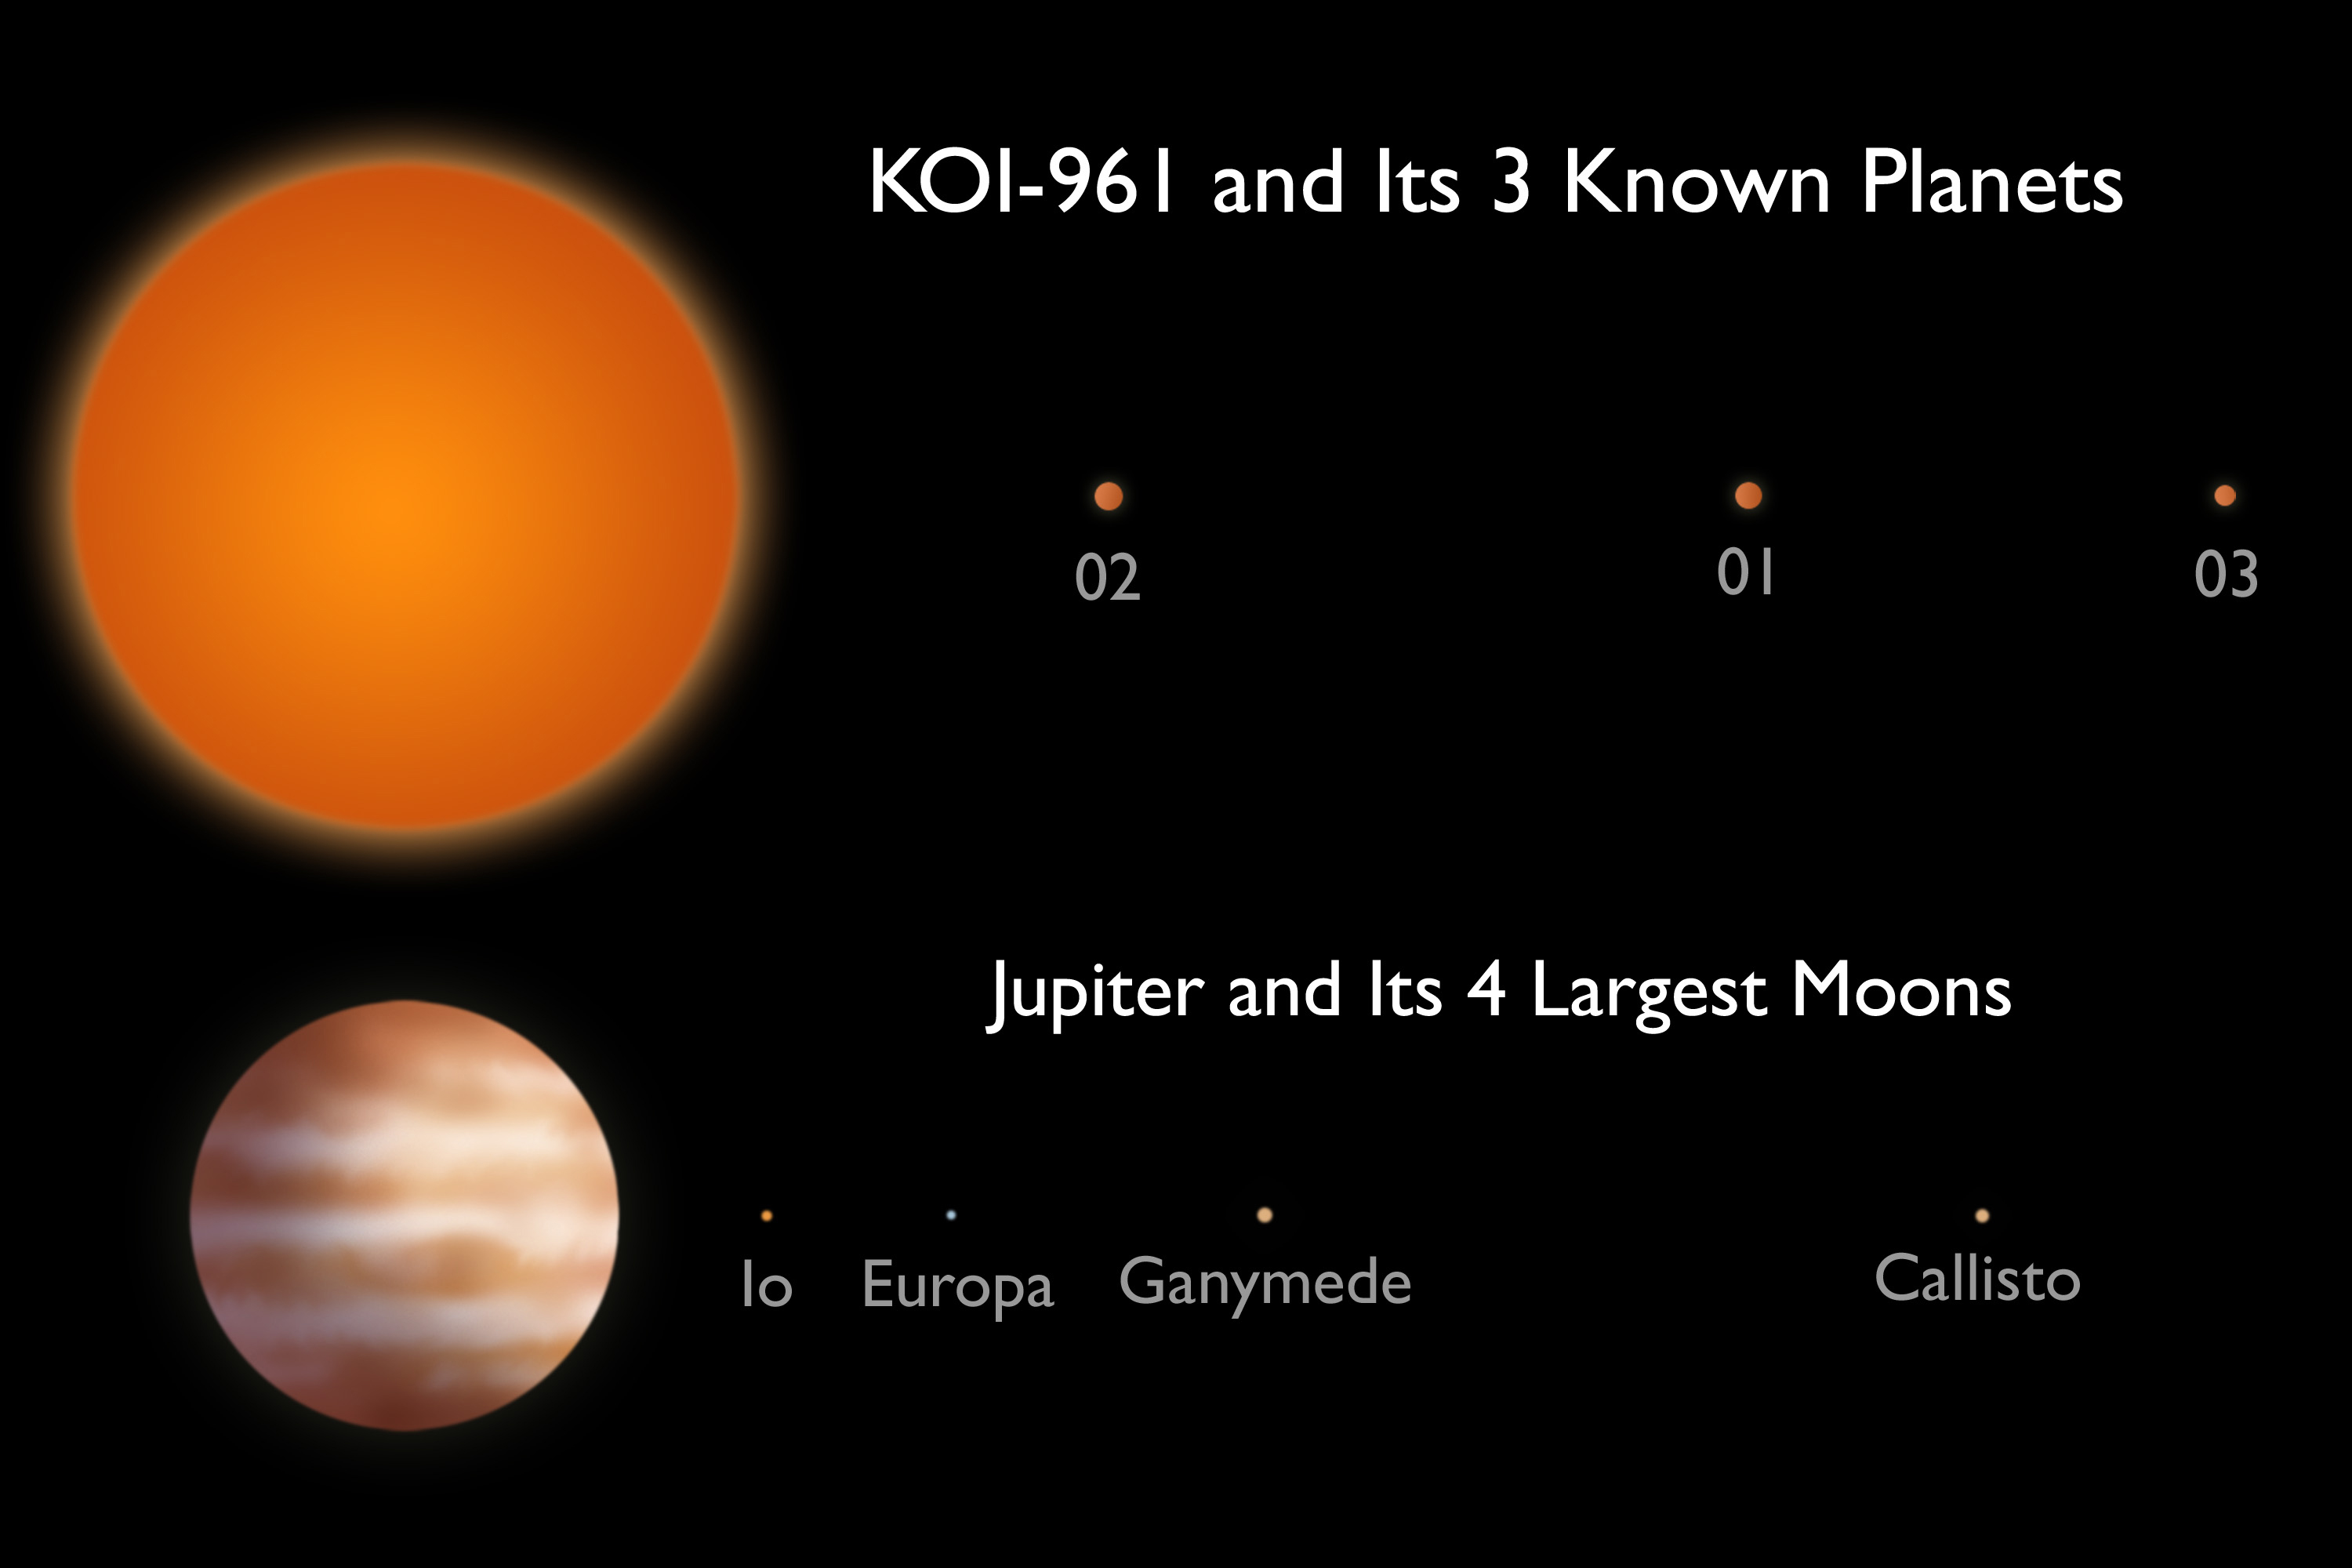 KOI-961 and its three known planets